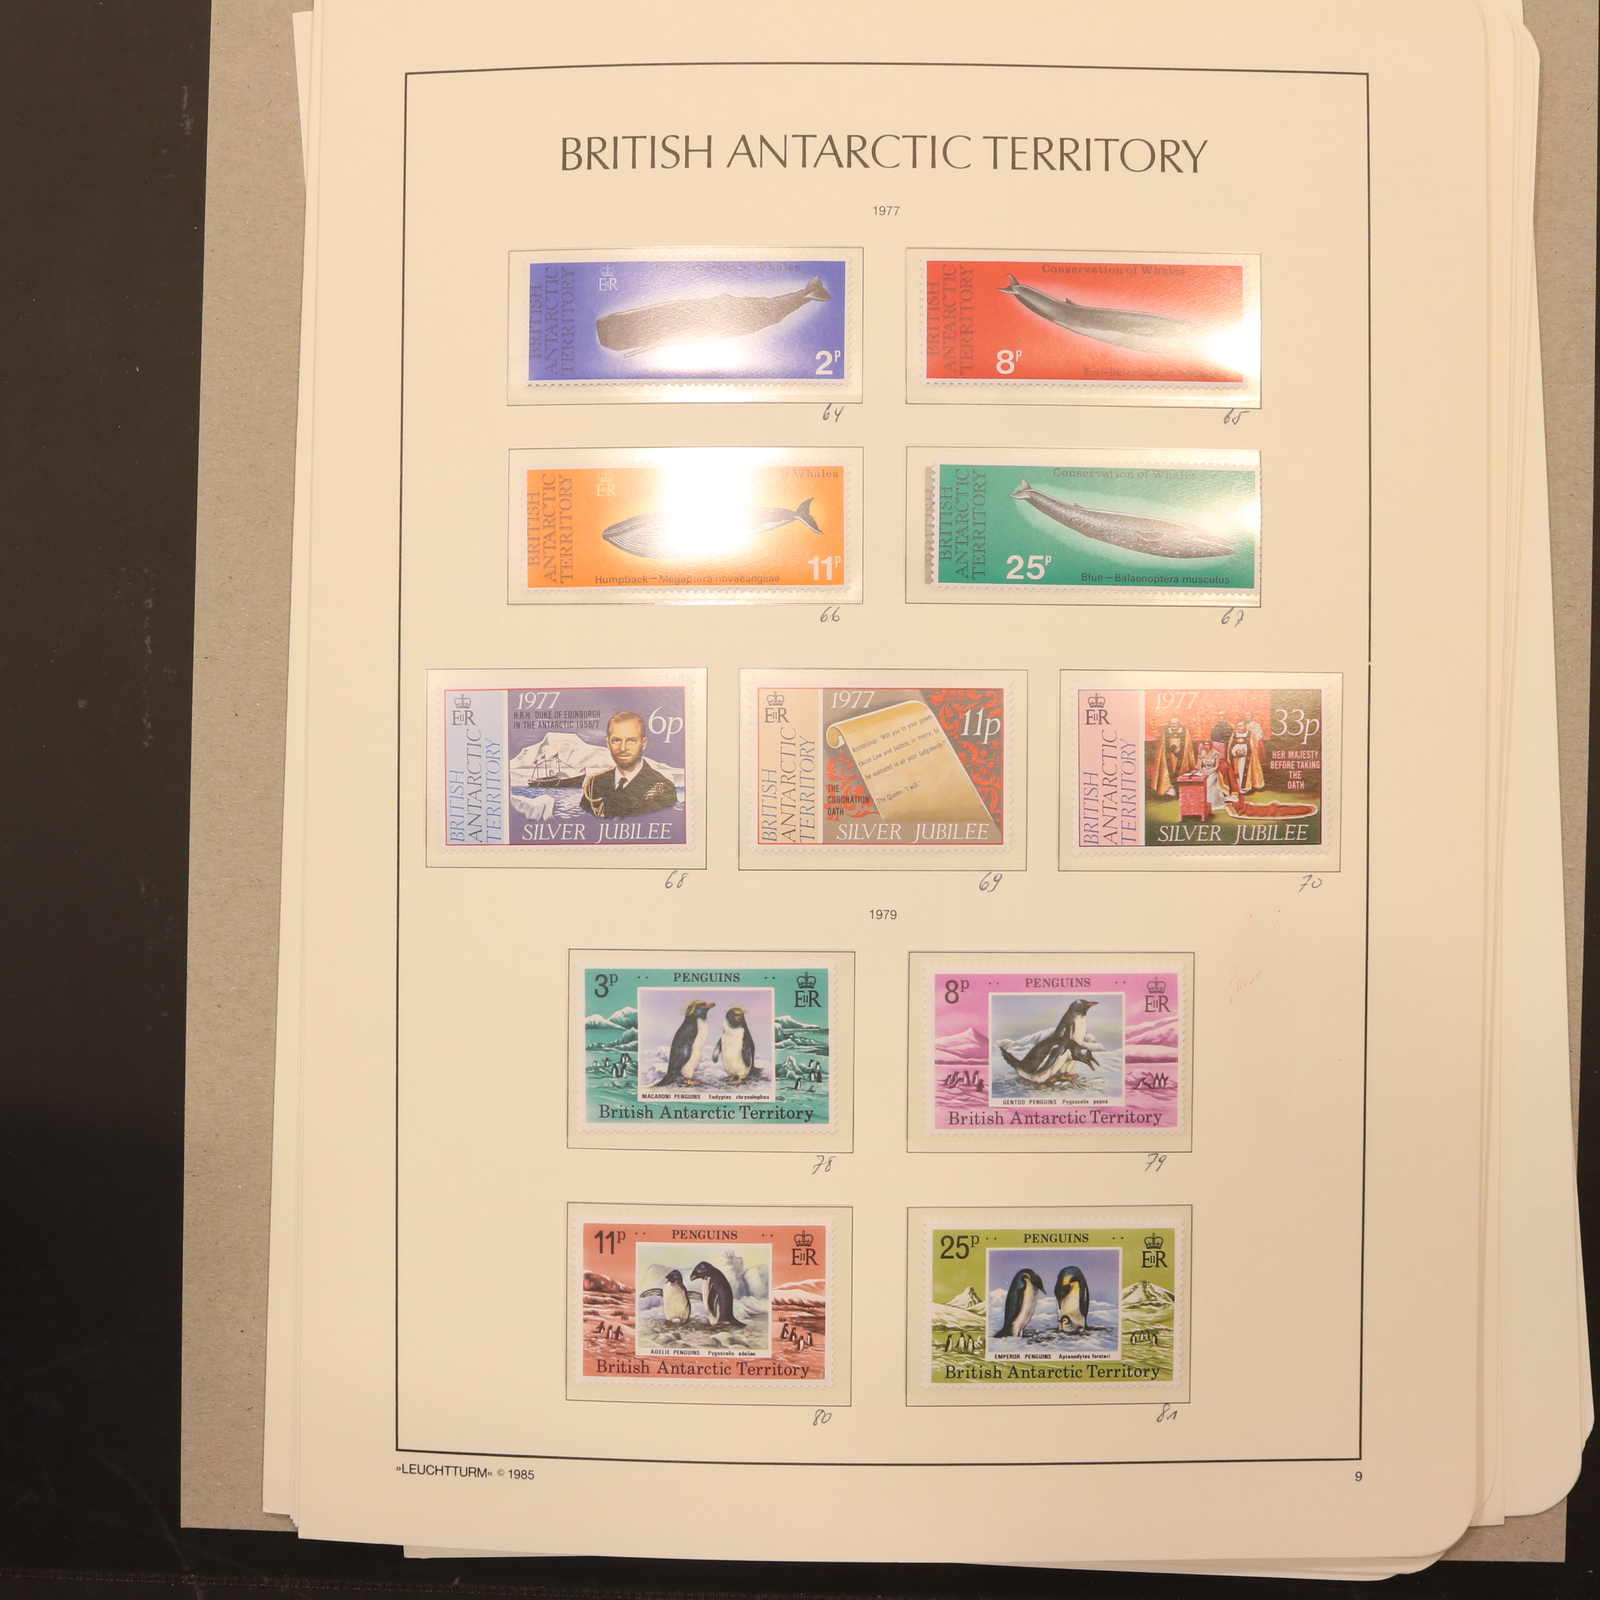 Lot 2764 - COLLECTIONS & ACCUMULATIONS british antarctic territory -  Auktionshaus Schlegel 26 Public Auction